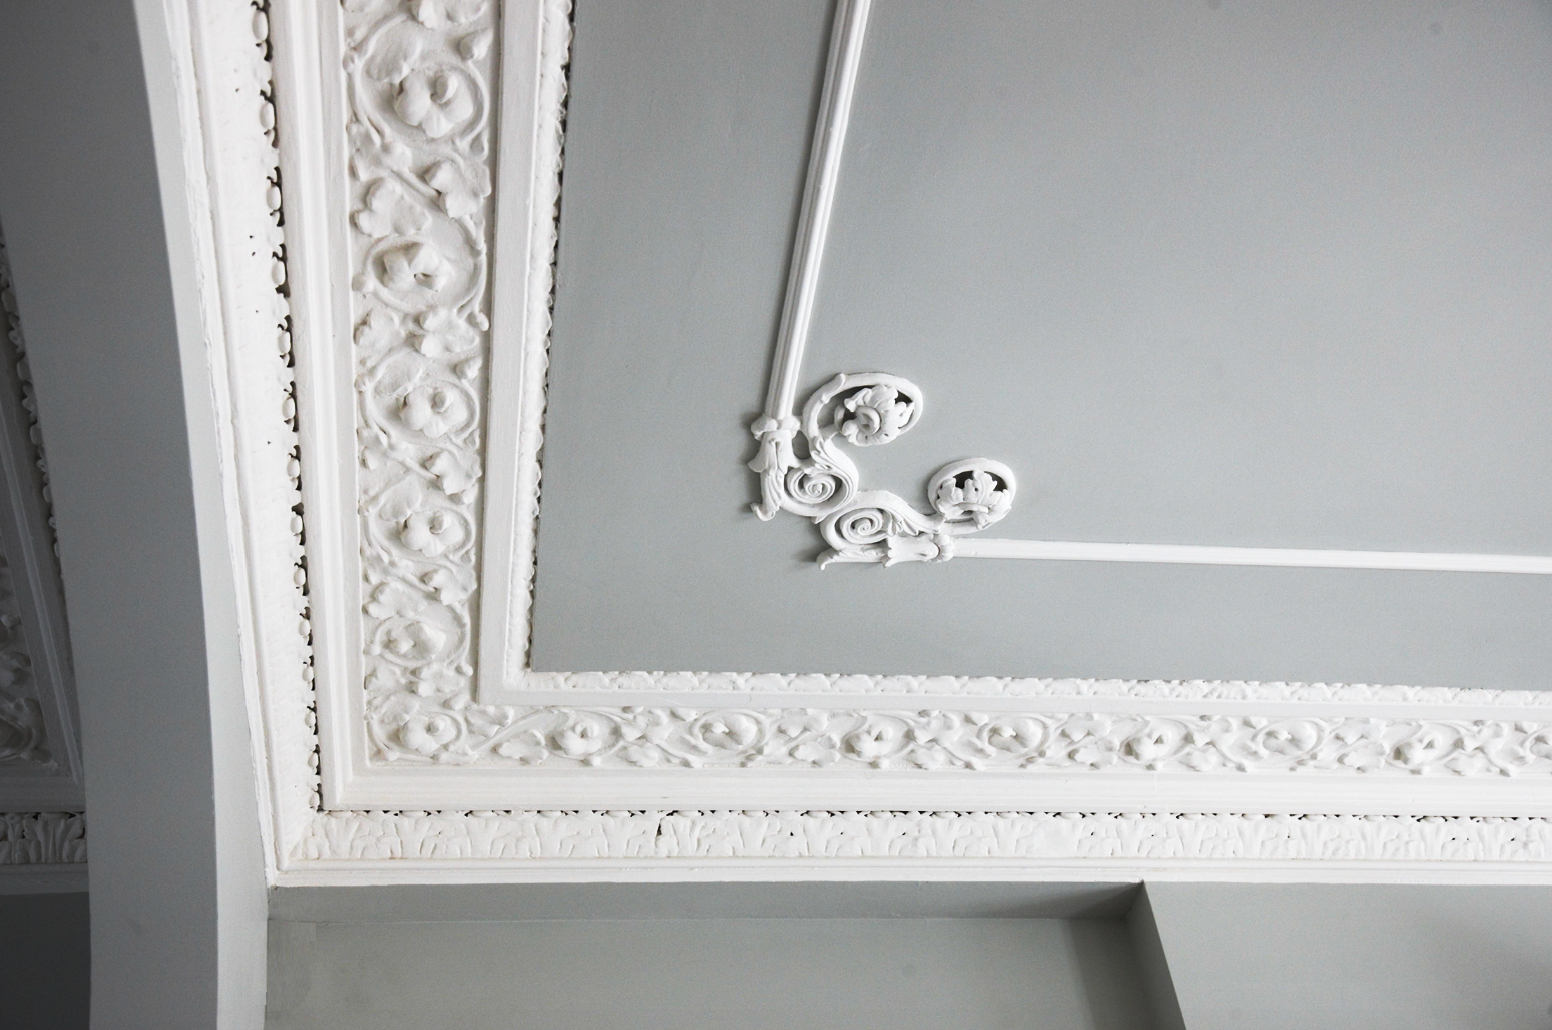 Detail of finishes on drawing room ceiling, to enhance the existing architectural details